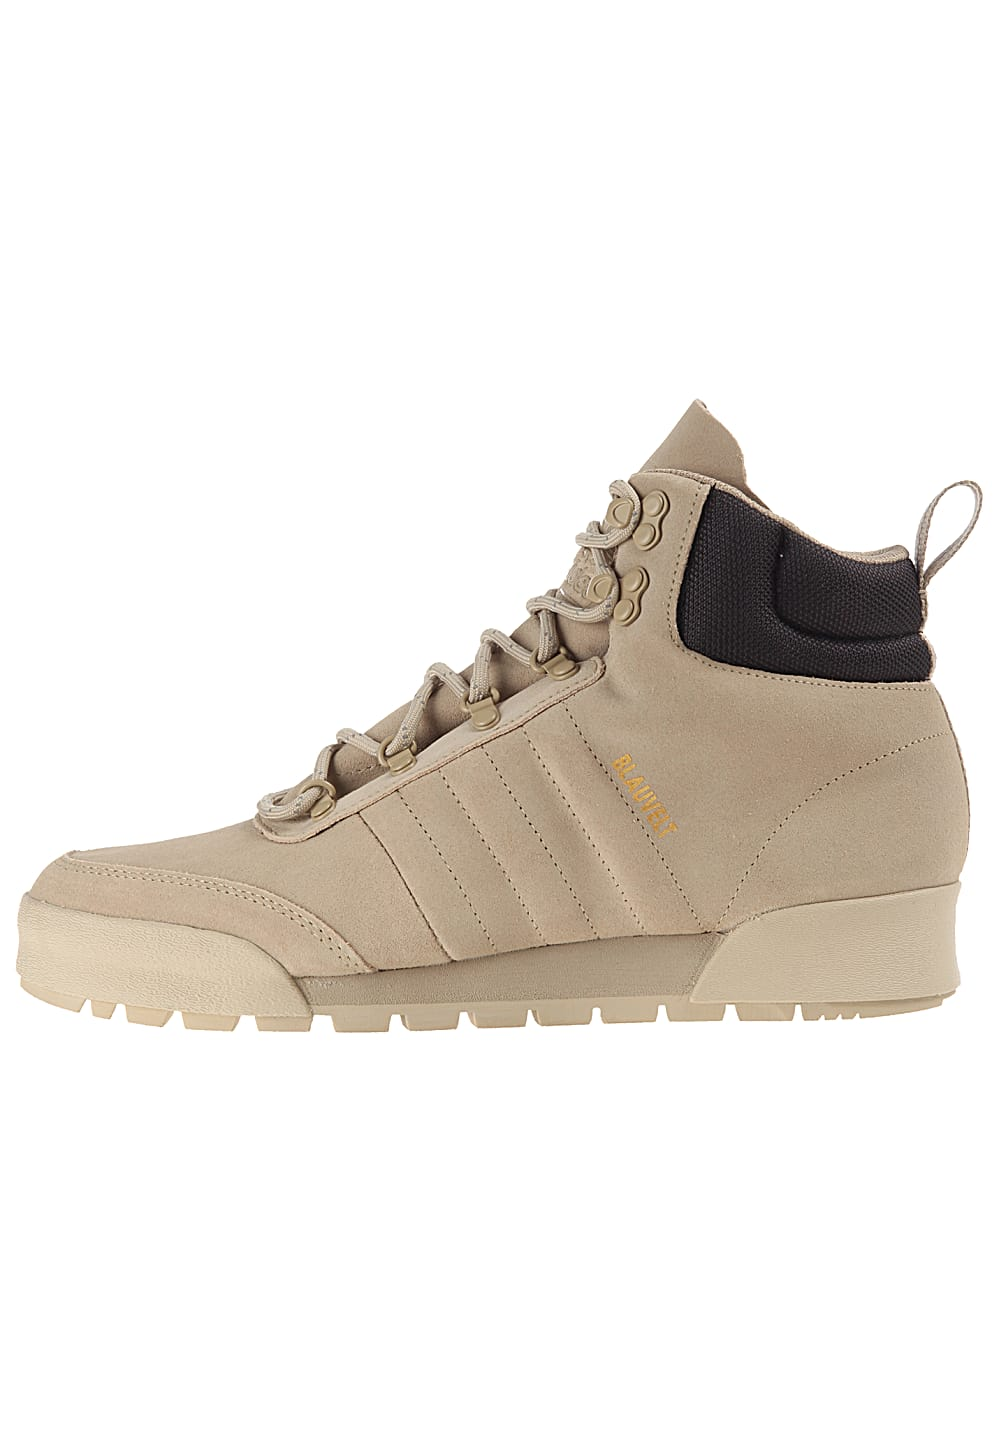 get cheap biggest discount online for sale Adidas Skateboarding Jake Boot 2.0 - Stiefel für Herren - Beige